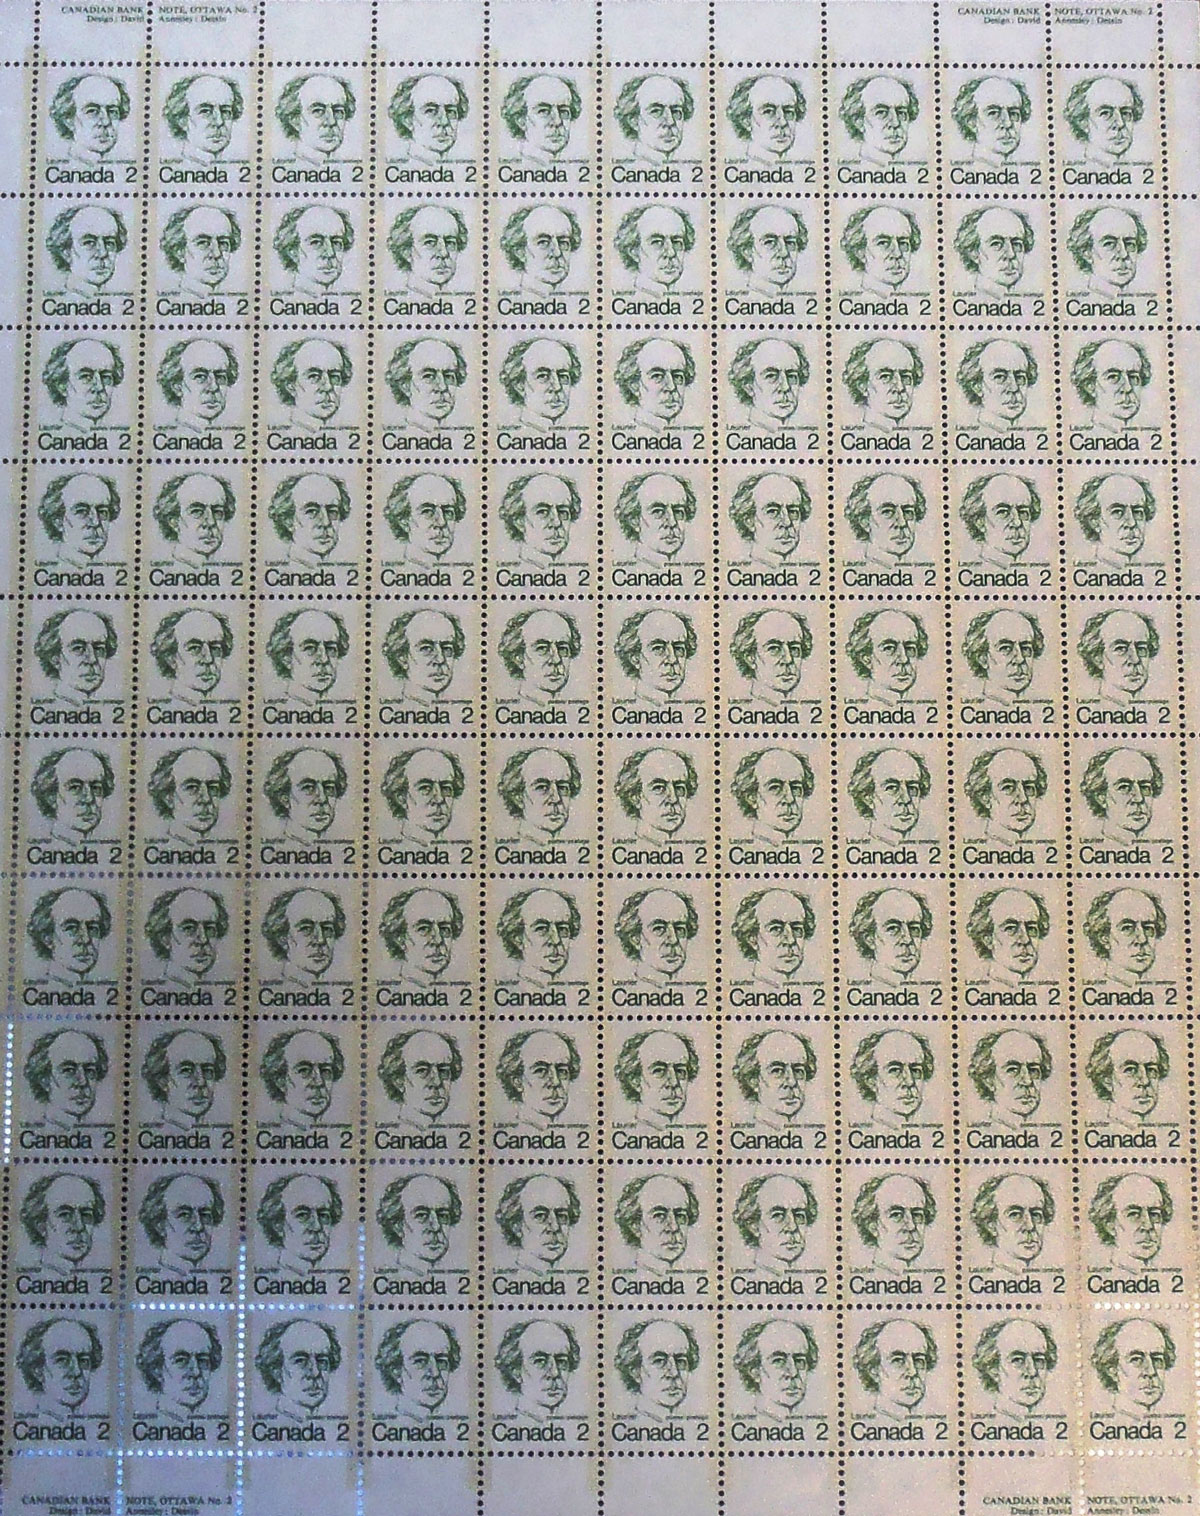 Sheet of 100 postage stamps depicting Laurier, 1973. Designer: David Annesley. Canadian Museum of History, Scott 587, IRN 1332913. Photo: Xavier Gélinas, PB040737